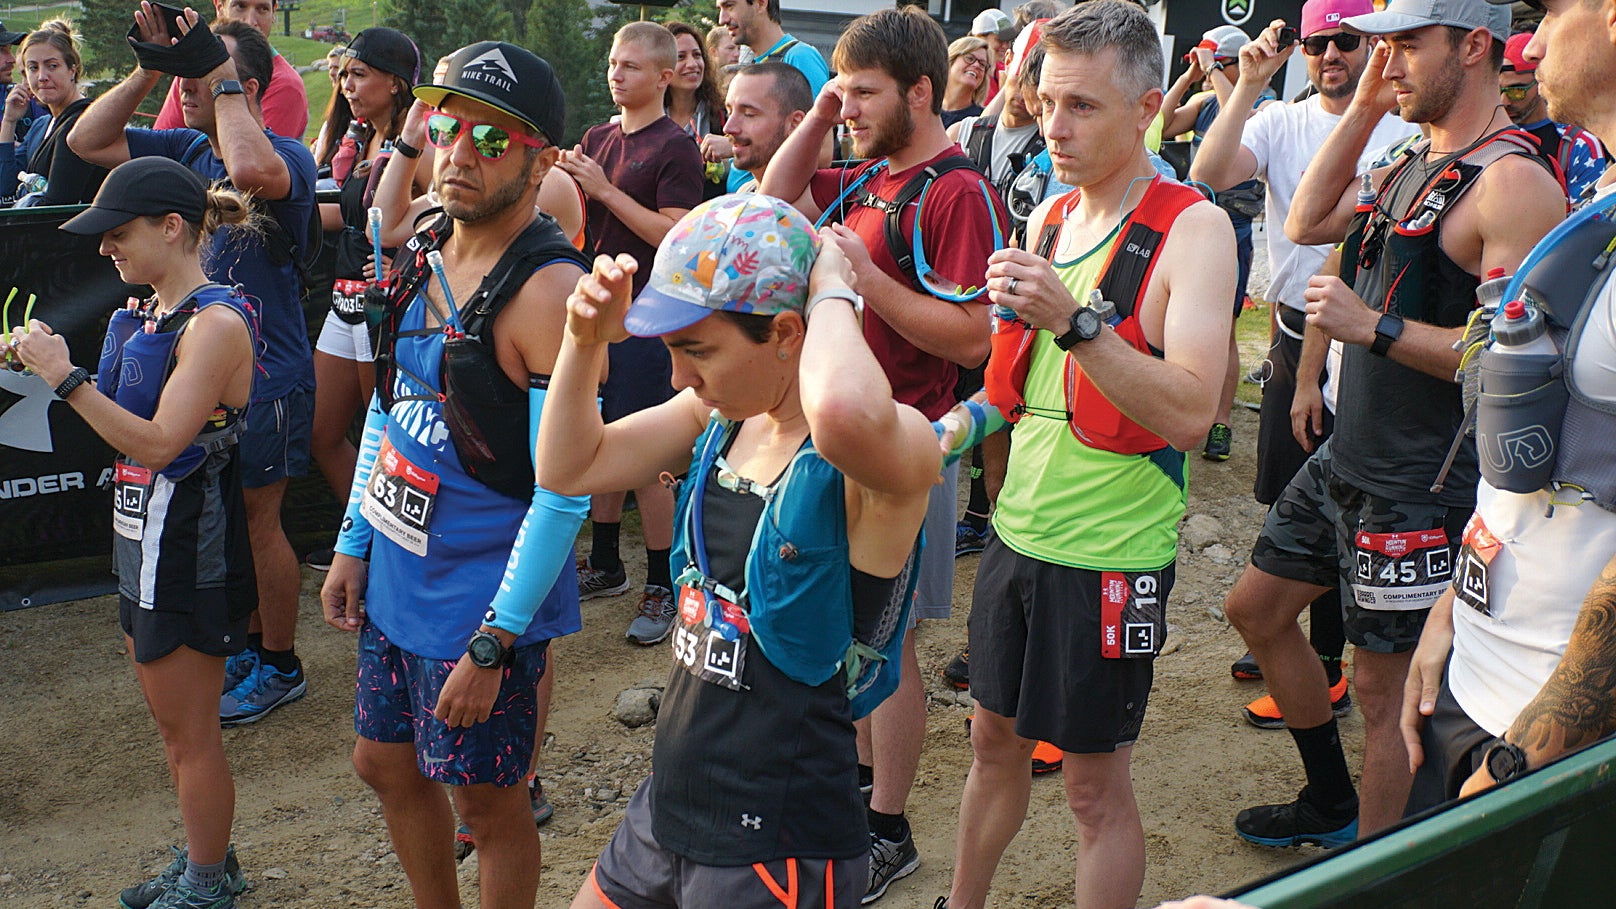 Molly Hurford in the starting corral of a 50K race